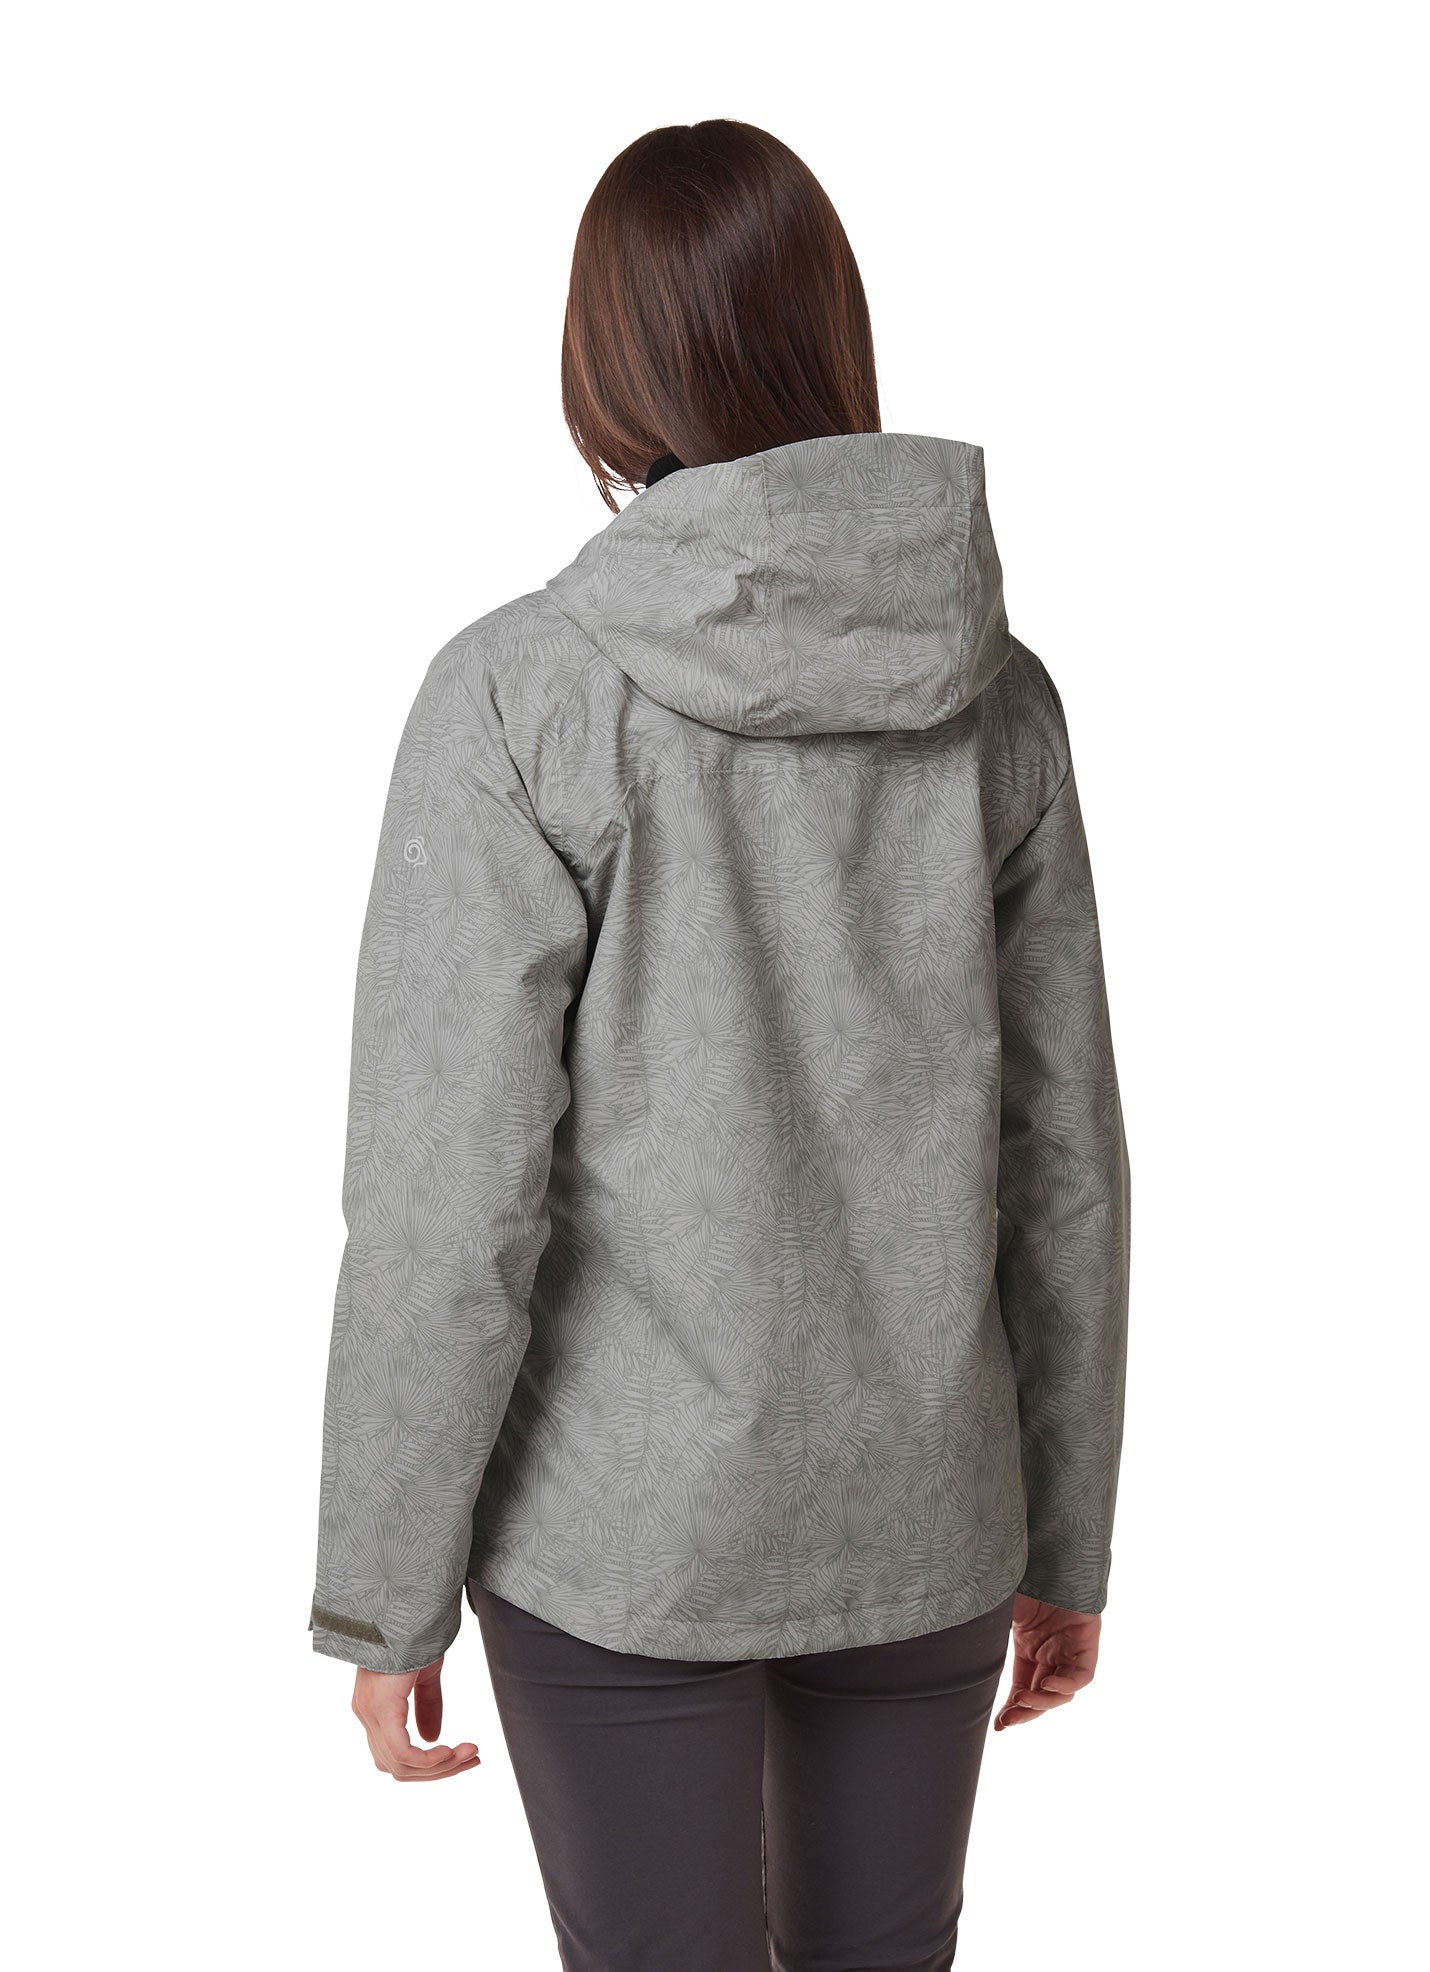 Back View grey Toscana Ladies Jacket by Craghoppers